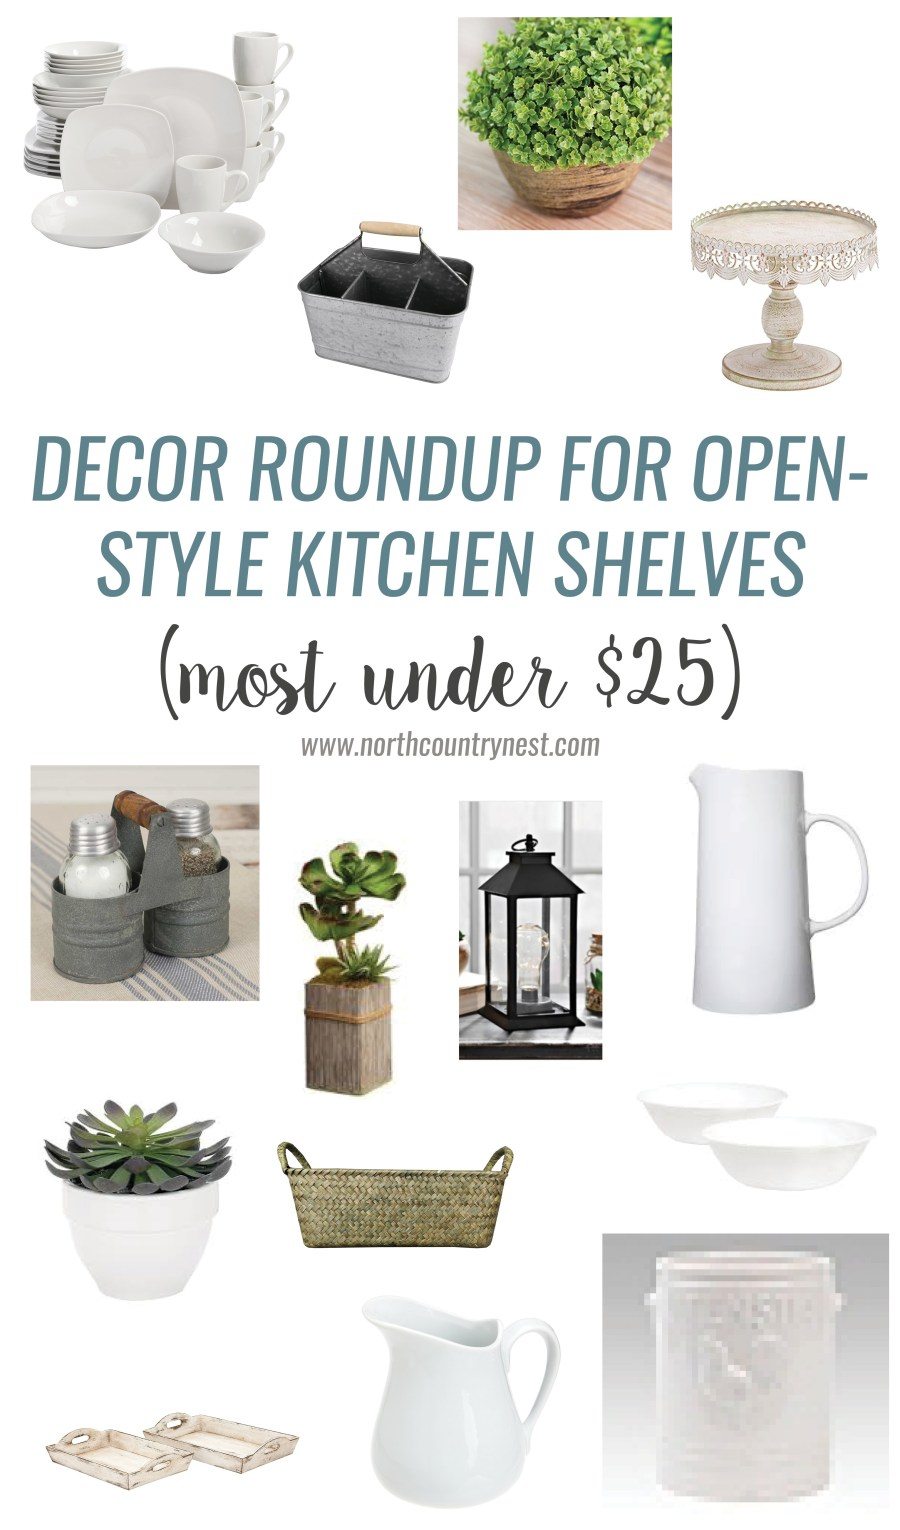 Decor Roundup for Open-Style Kitchen Shelves